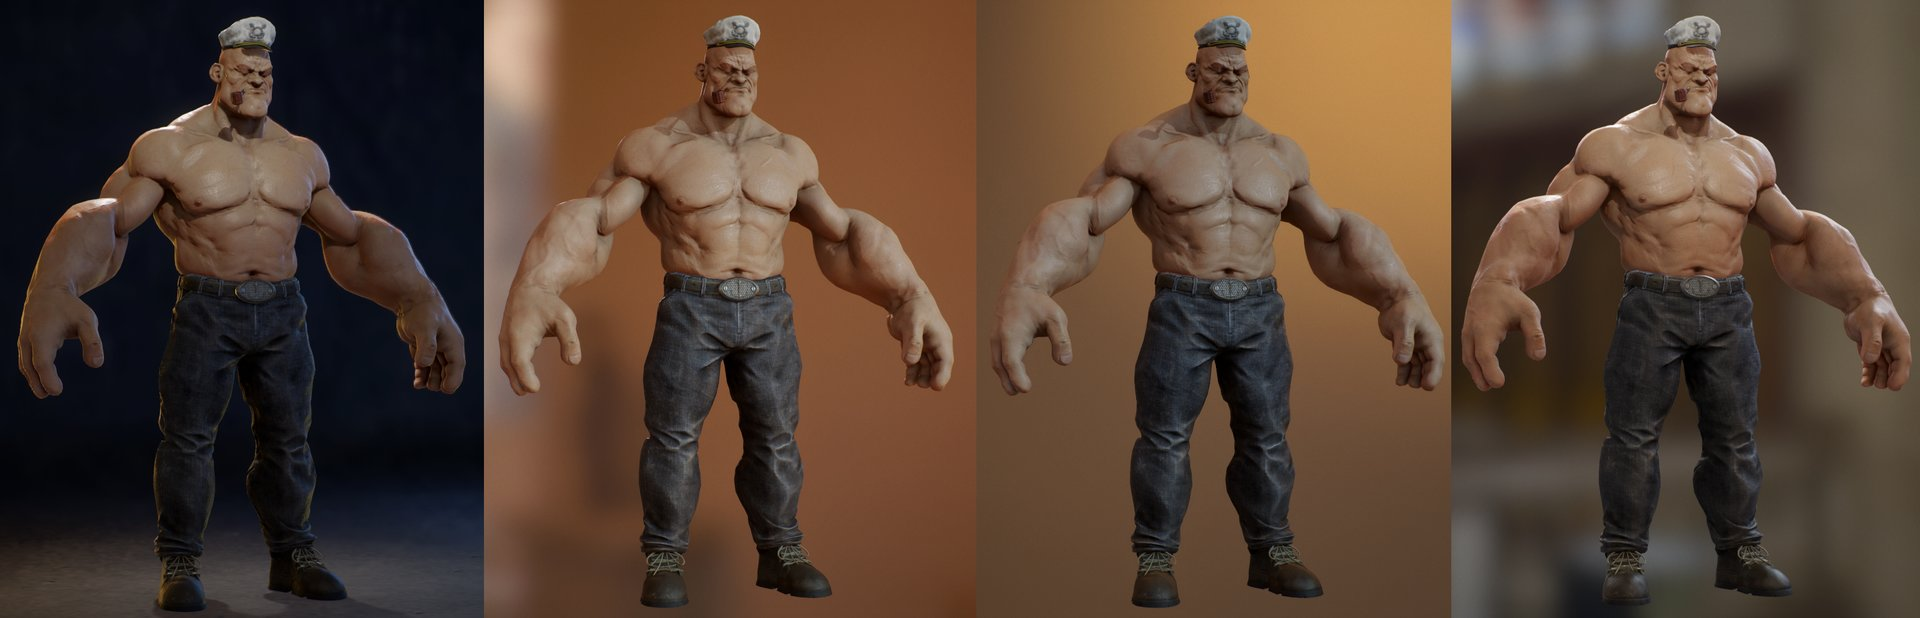 Matthew kean zbrush document5